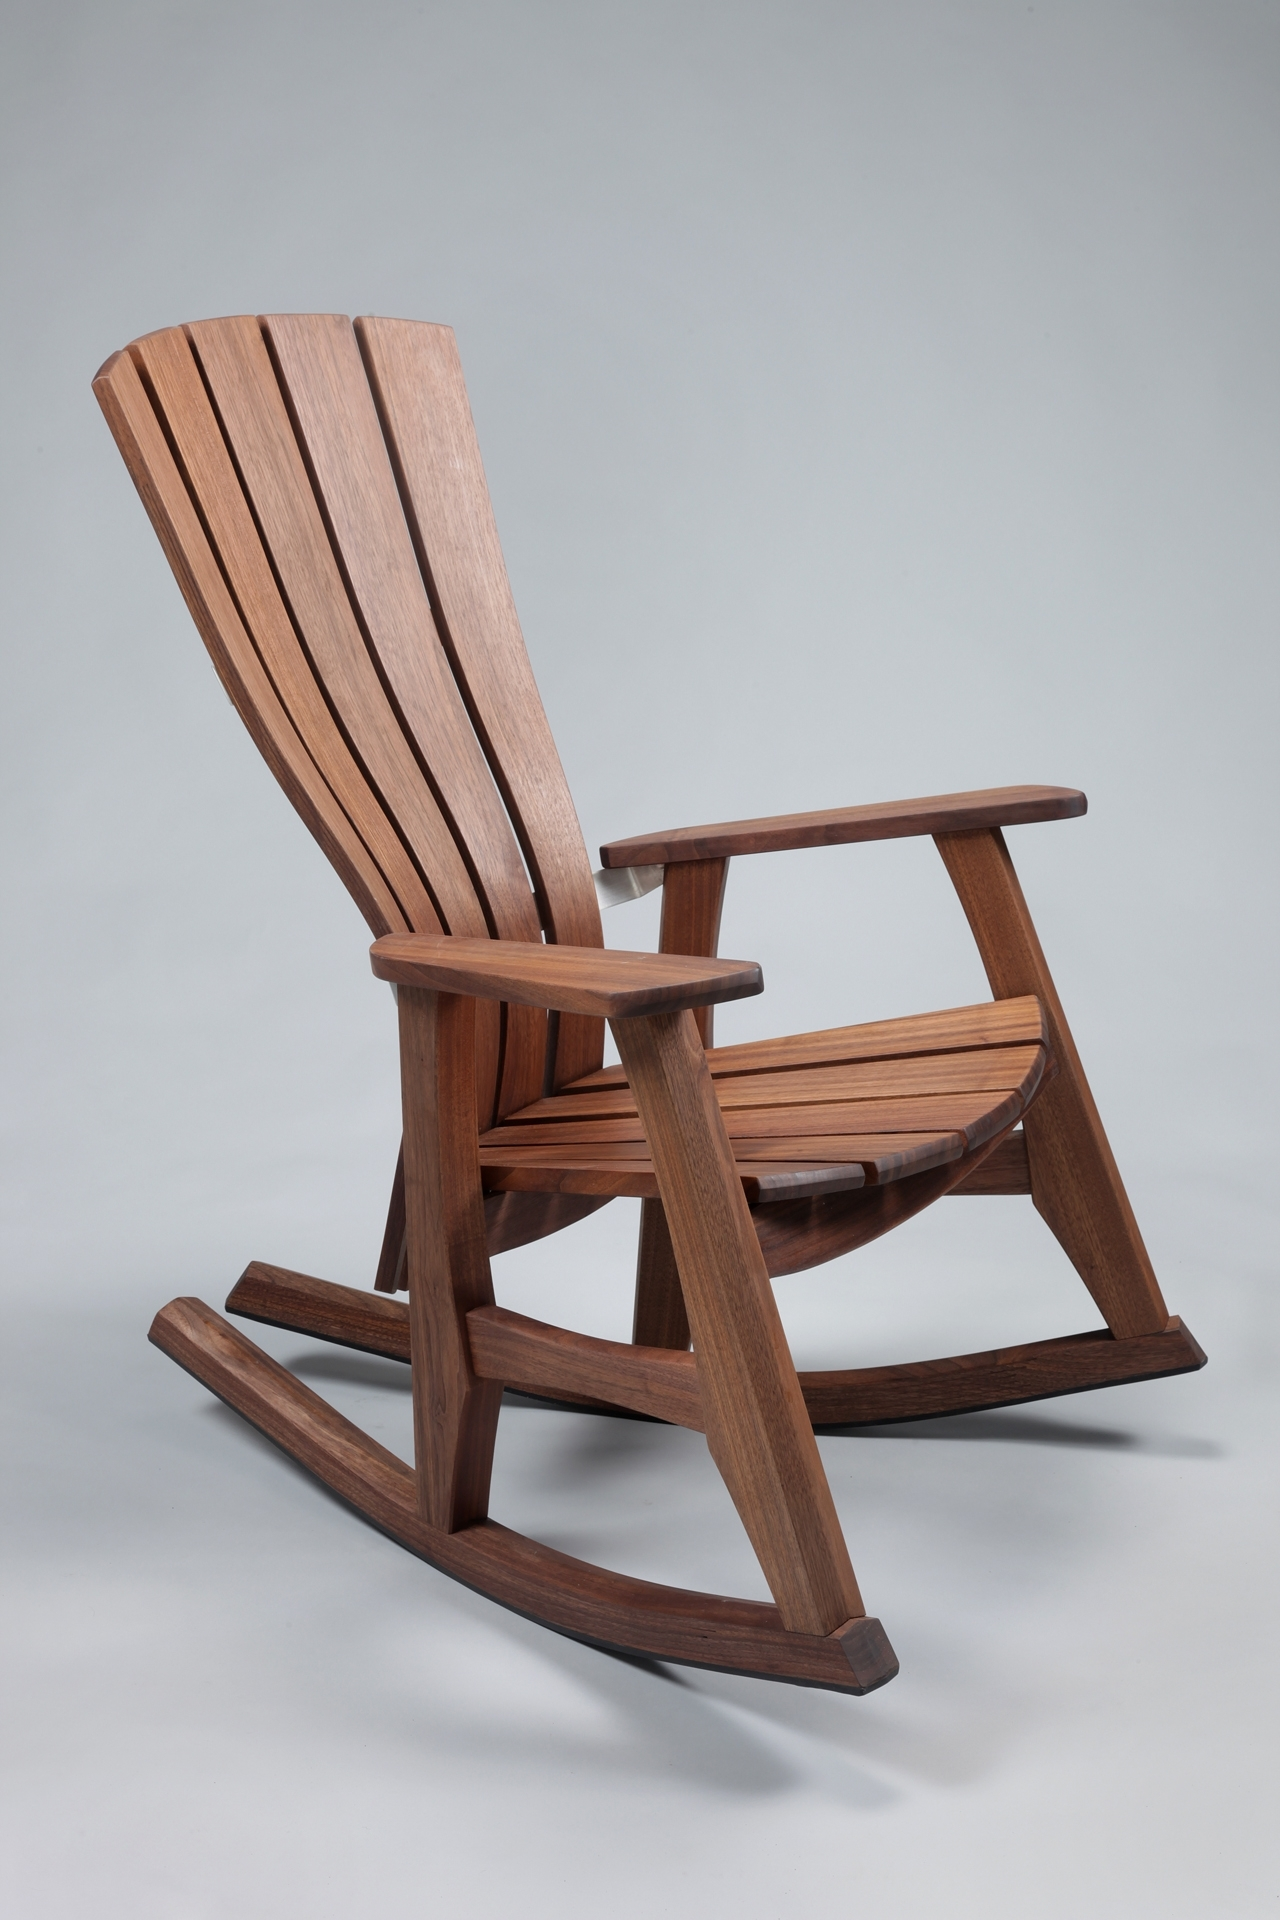 Sunniva Rocking Chair Furniture Ideas Chairs Wooden Outdoor With Most Current Unique Outdoor Rocking Chairs (View 12 of 20)